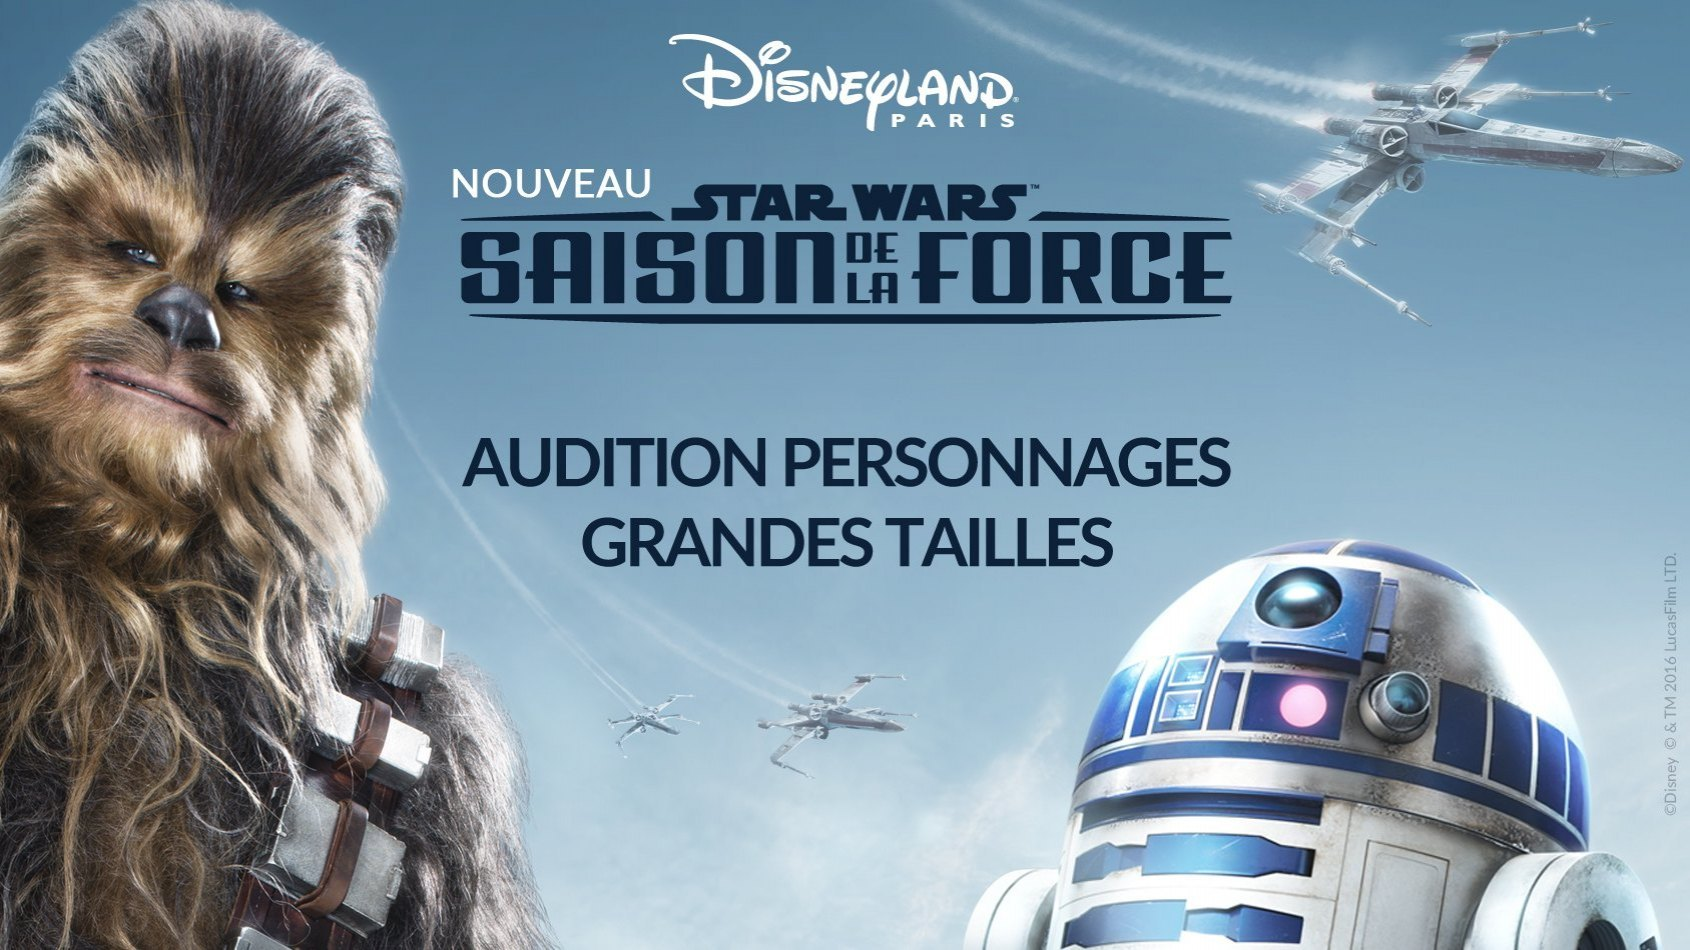 Audition pour interpréter des personnages Star Wars à Disneyland Paris